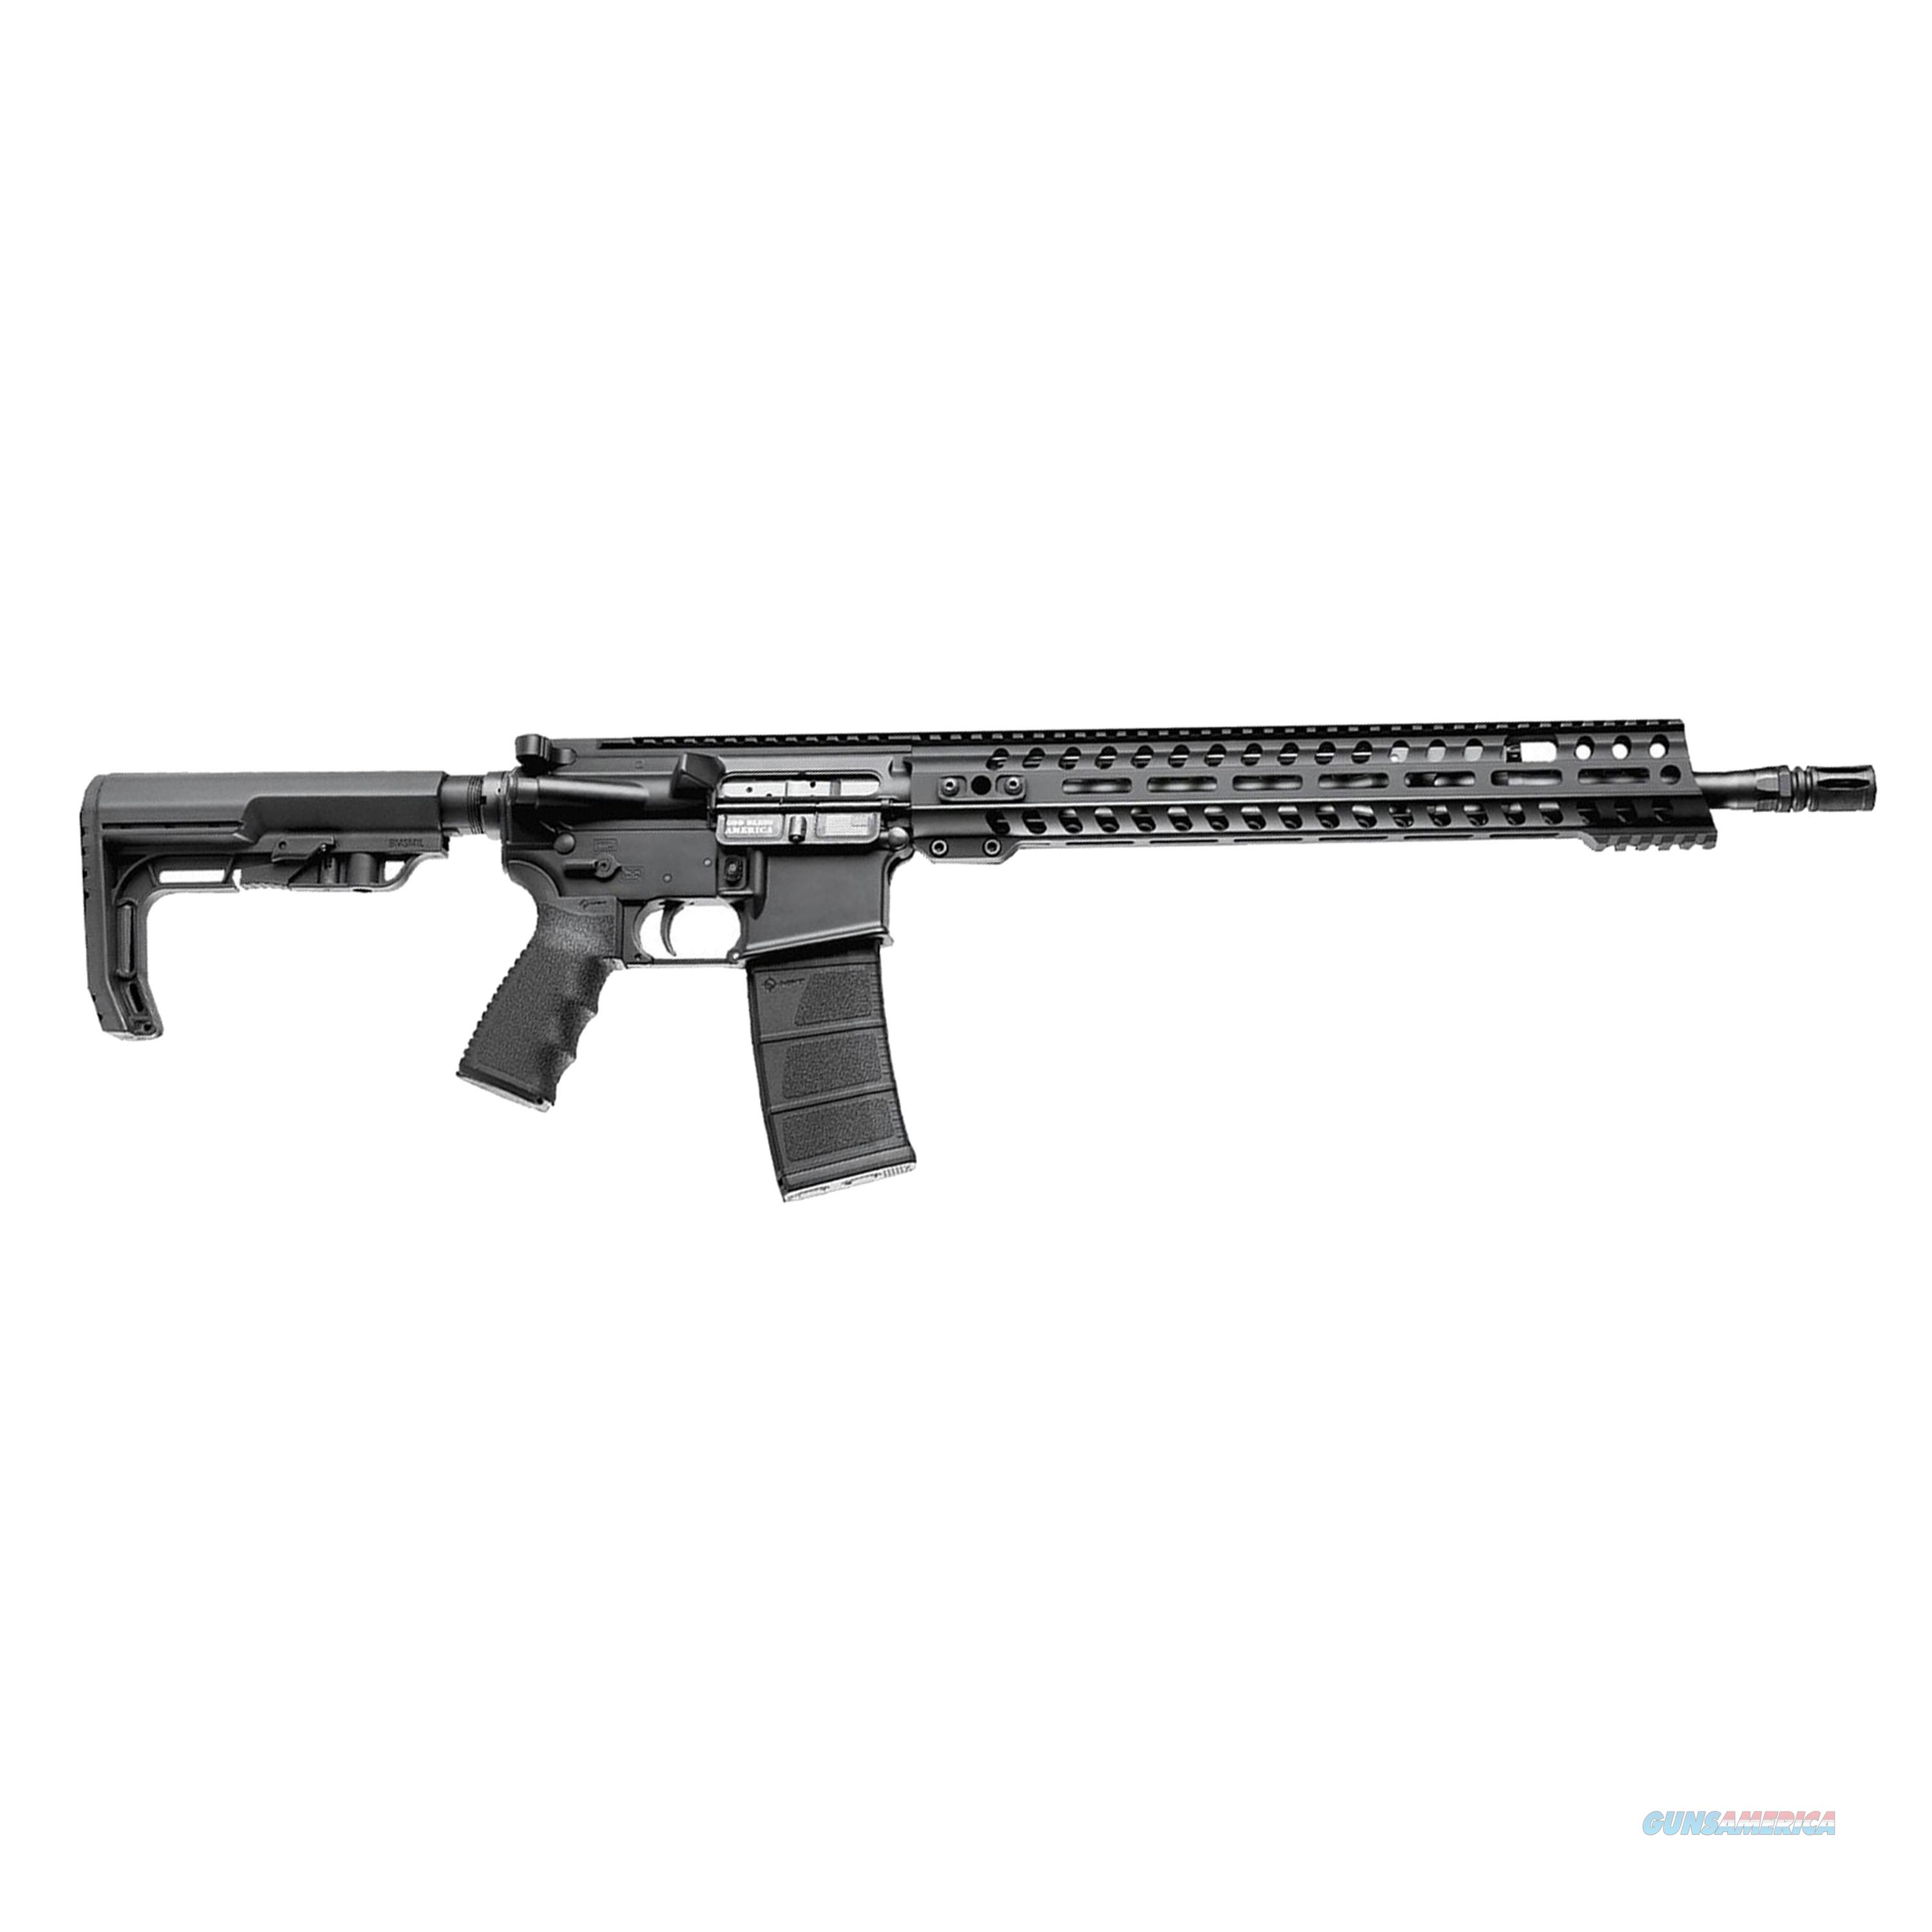 "Patriot Ord Factory Renegade, 5.56Mm Nato, 16"" Barrel, 30 Rounds, Black Hard Coat Anodized 00857  Guns > Rifles > PQ Misc Rifles"